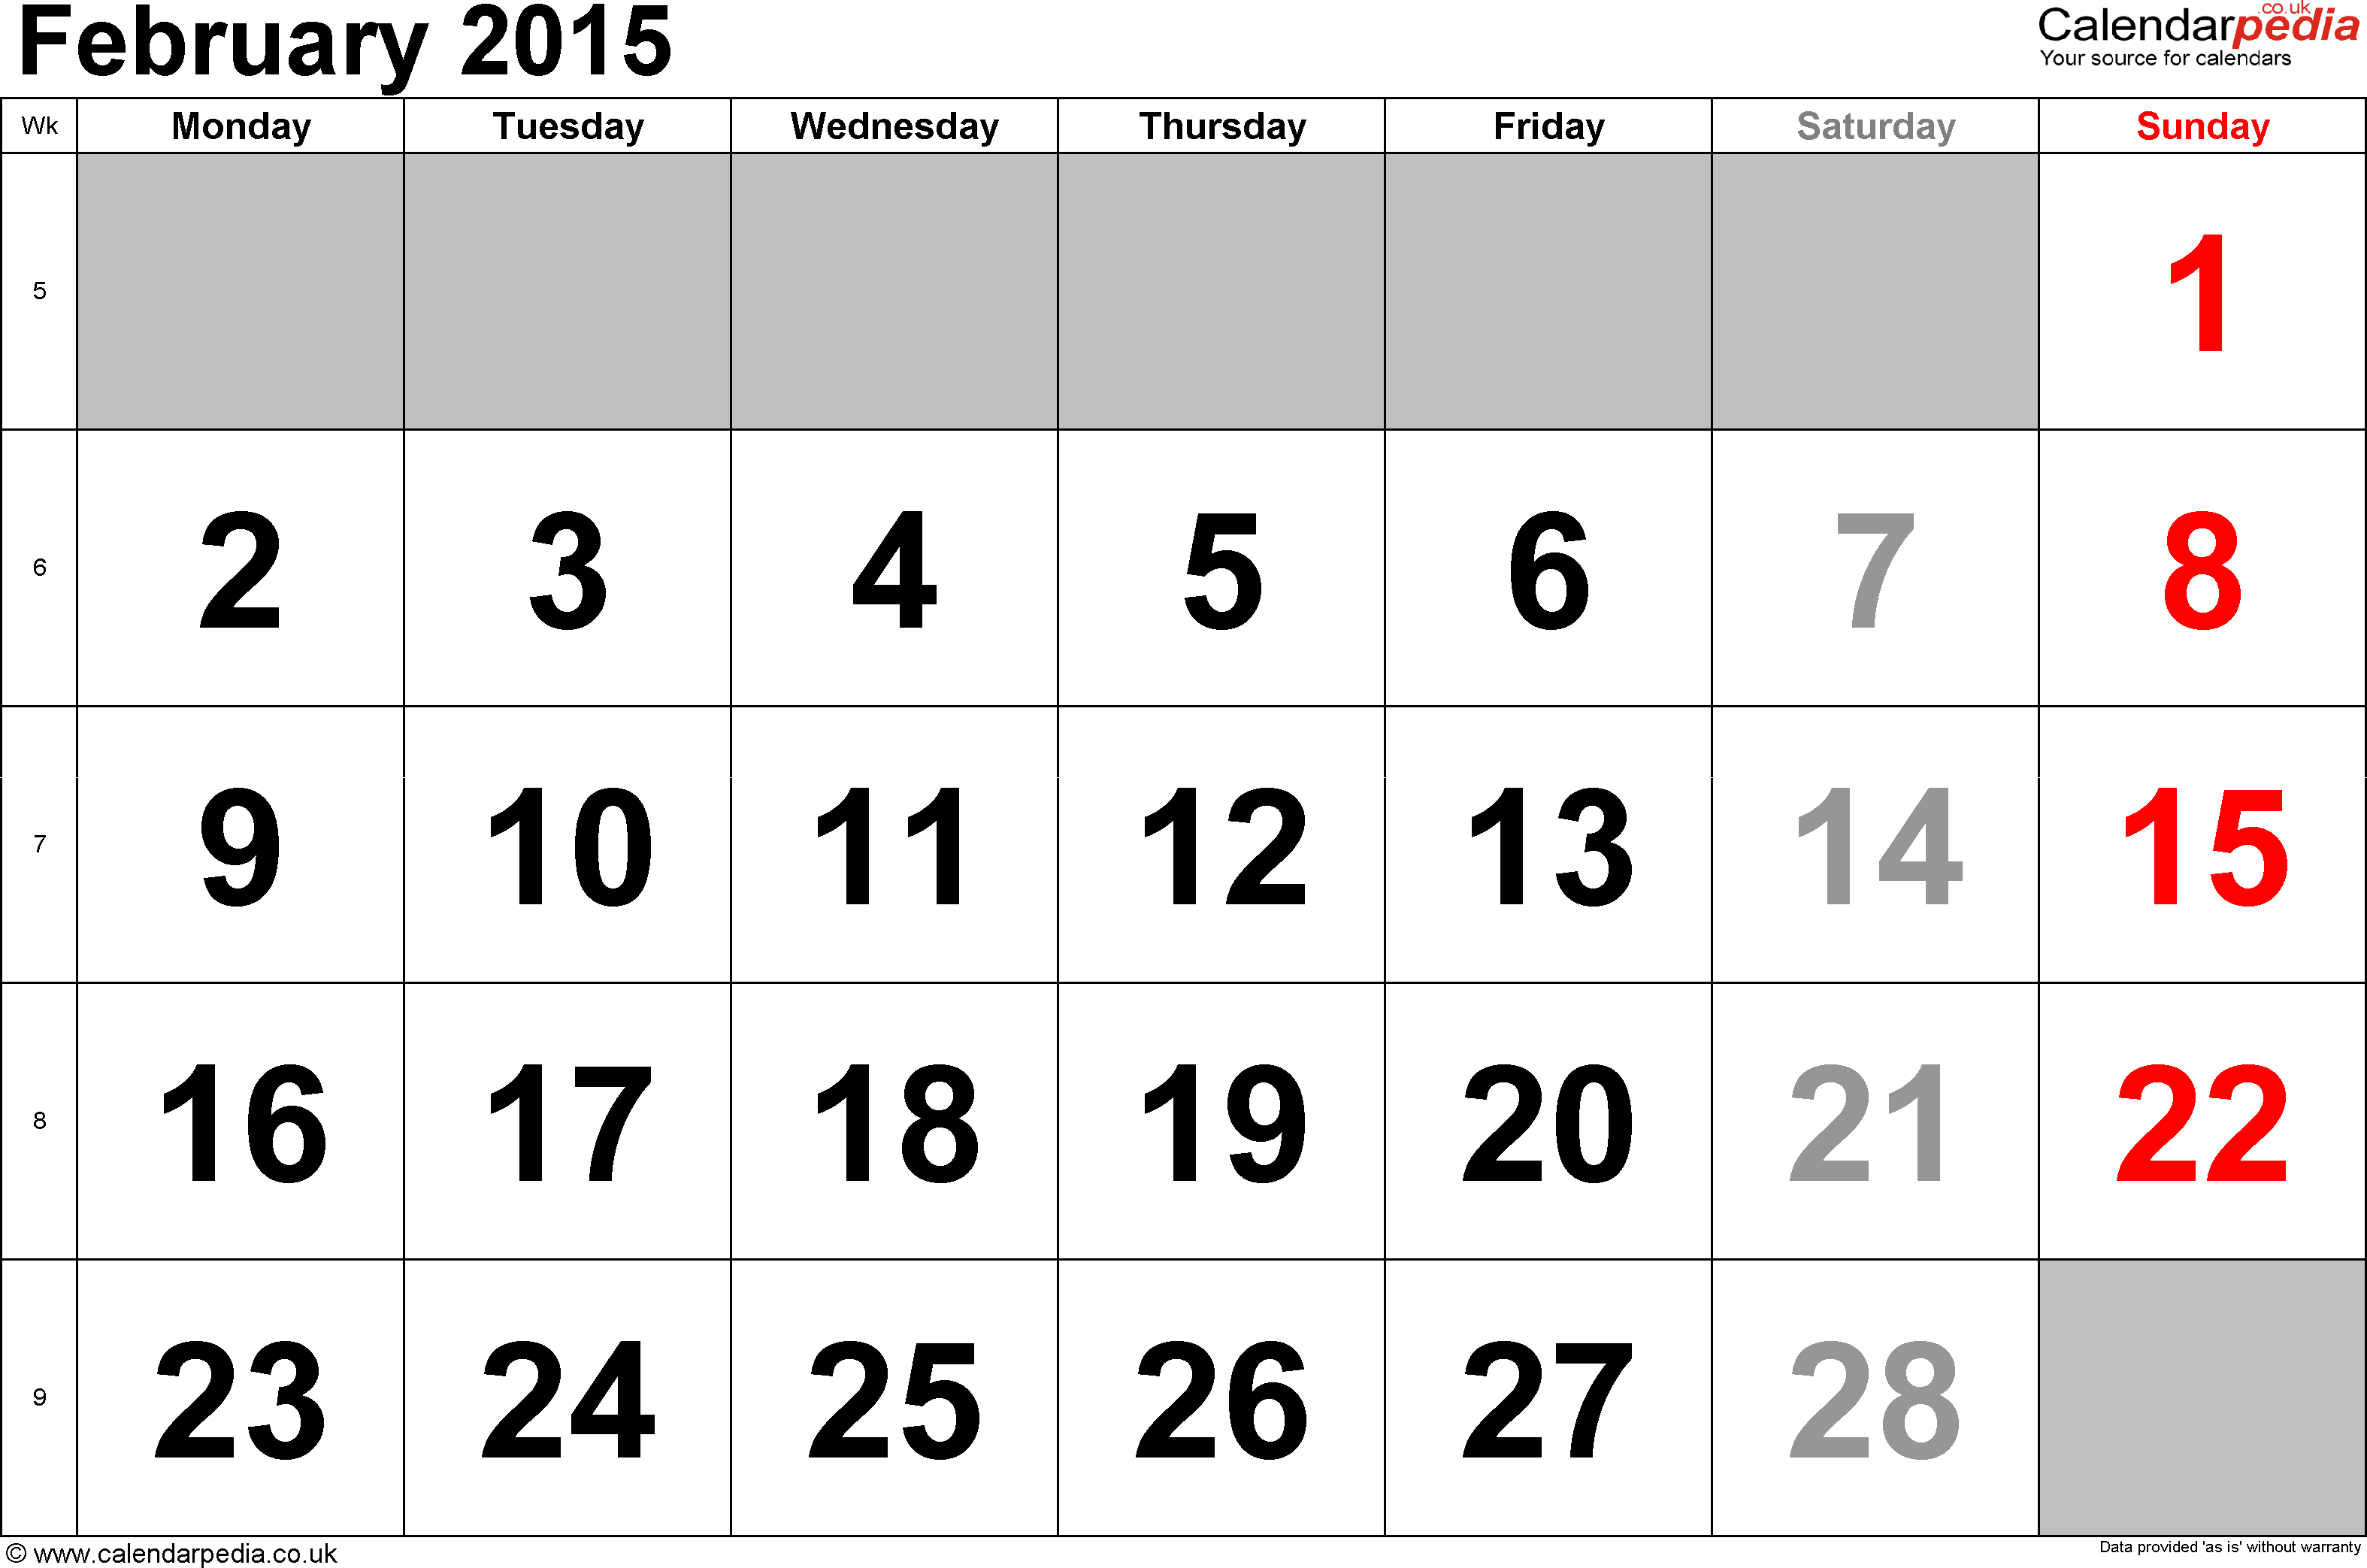 Calendar February 2015, landscape orientation, large numerals, 1 page, with UK bank holidays and week numbers